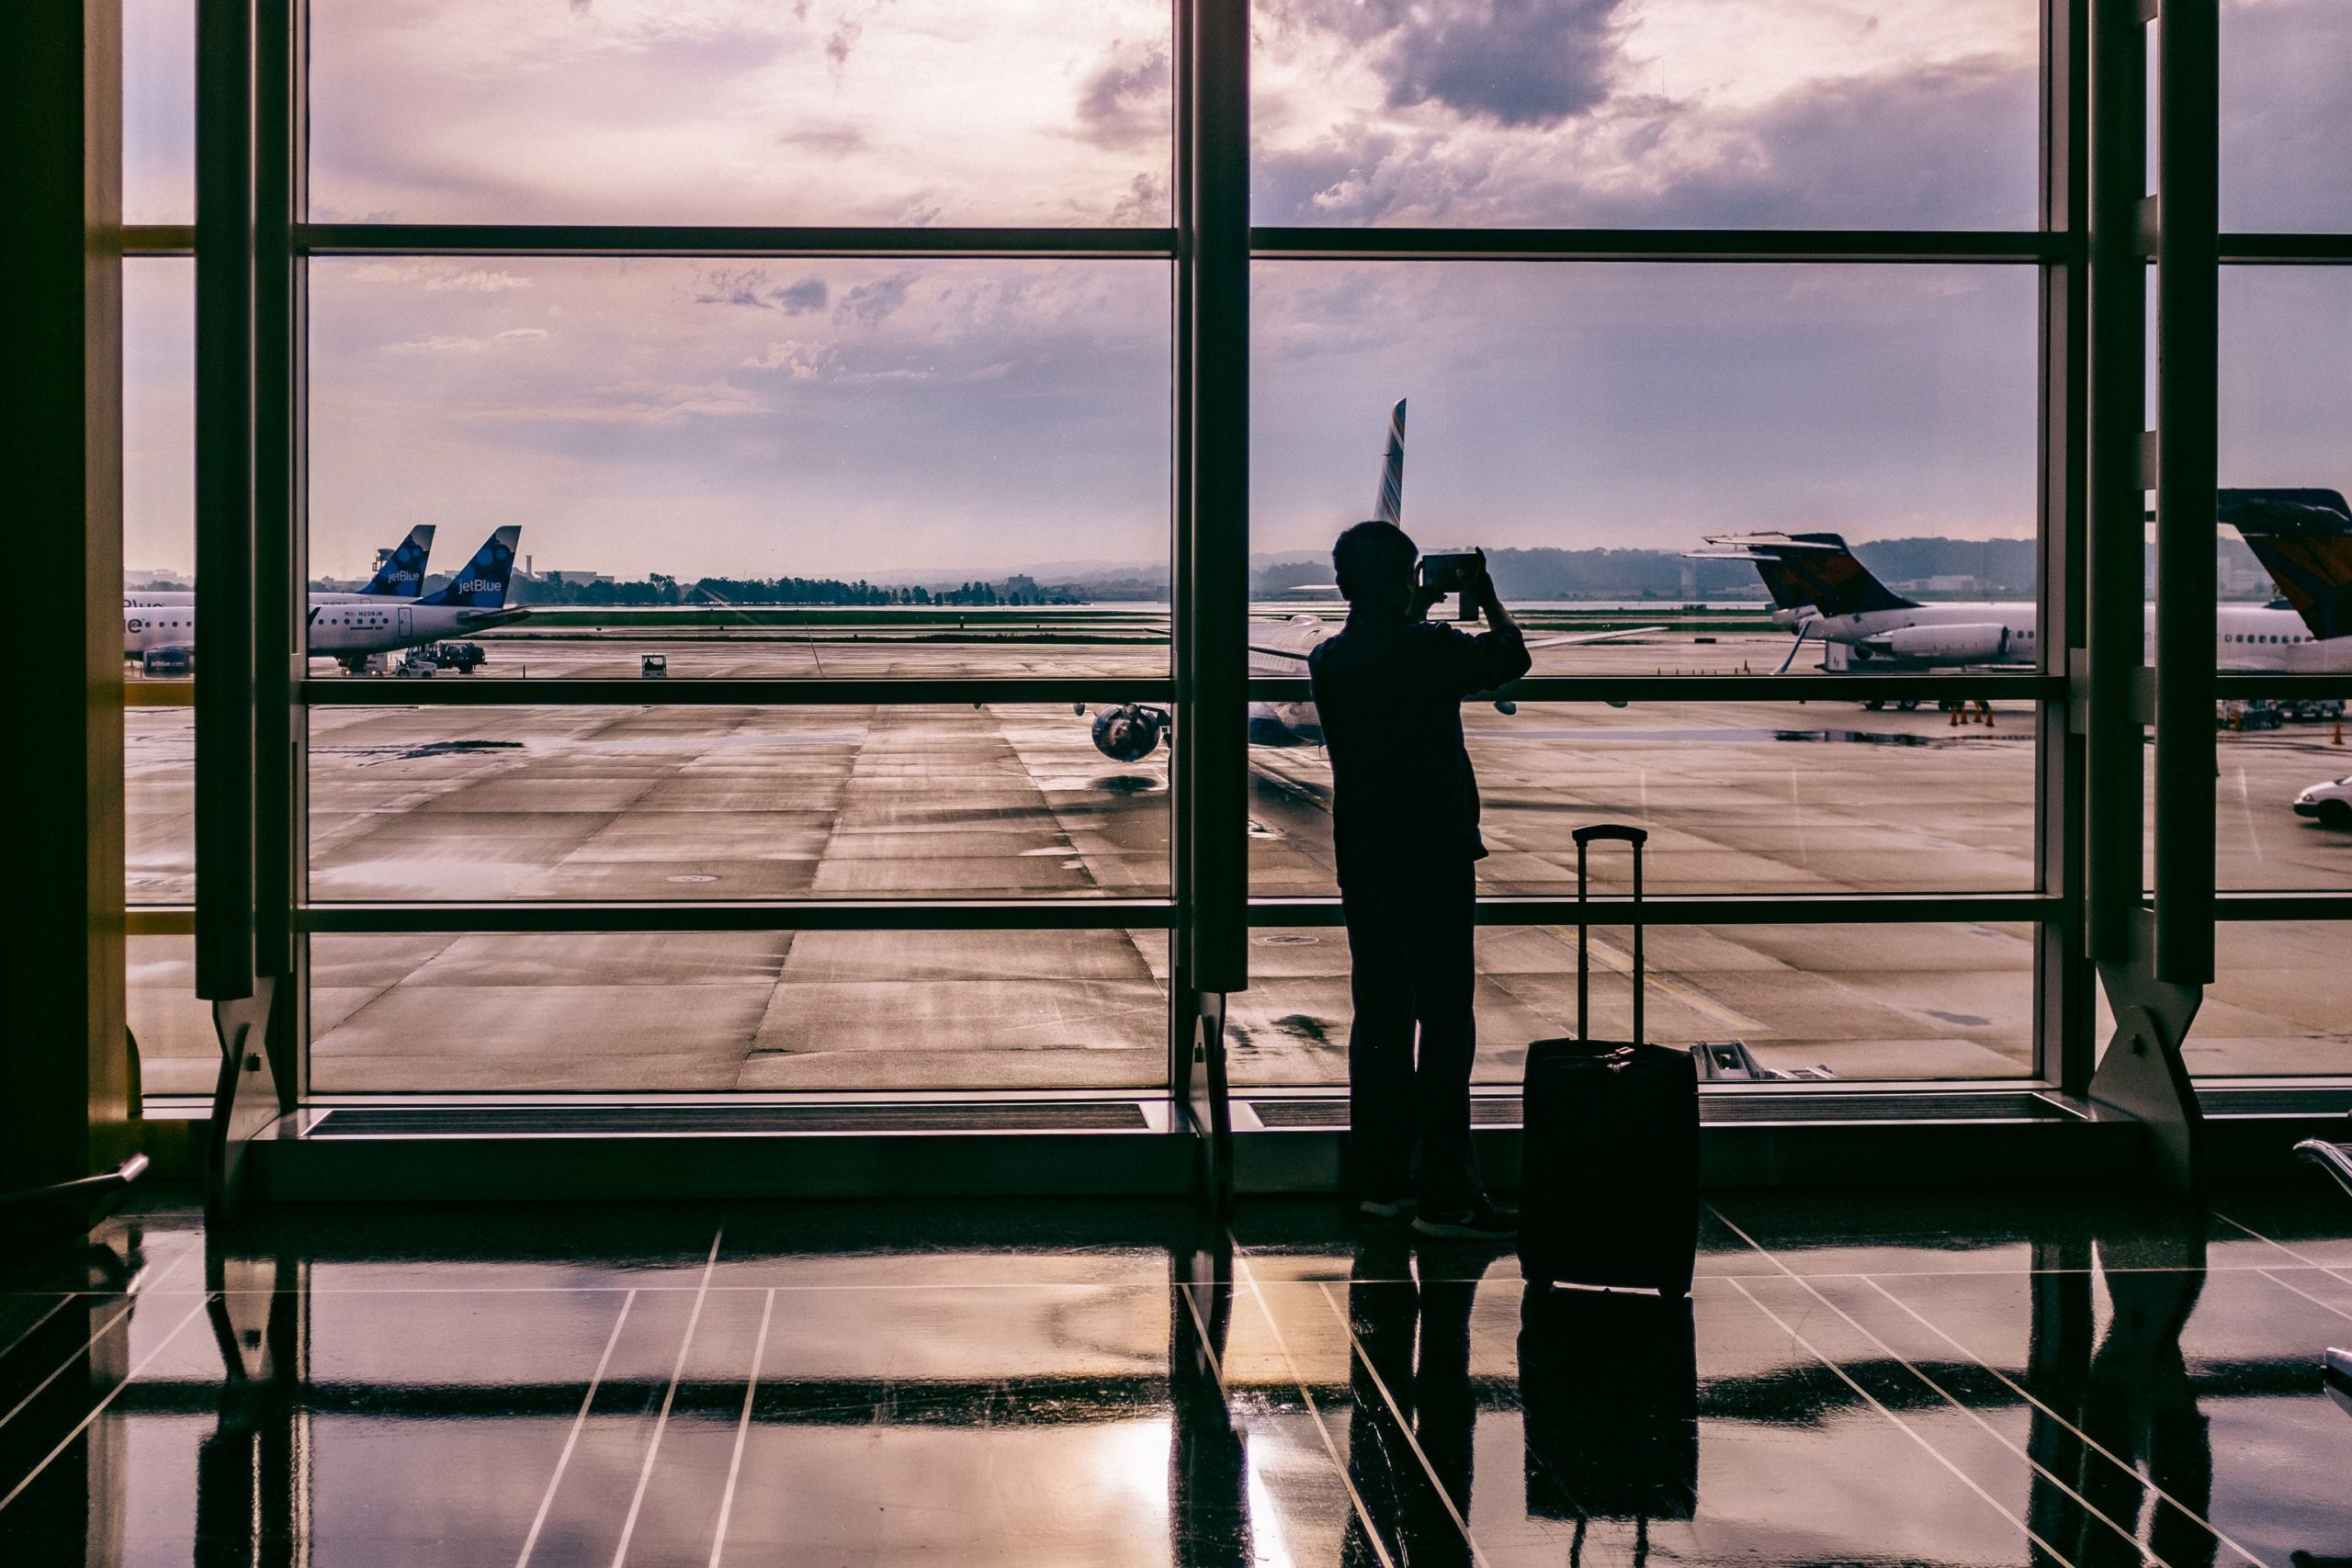 how to apply for travel insurance